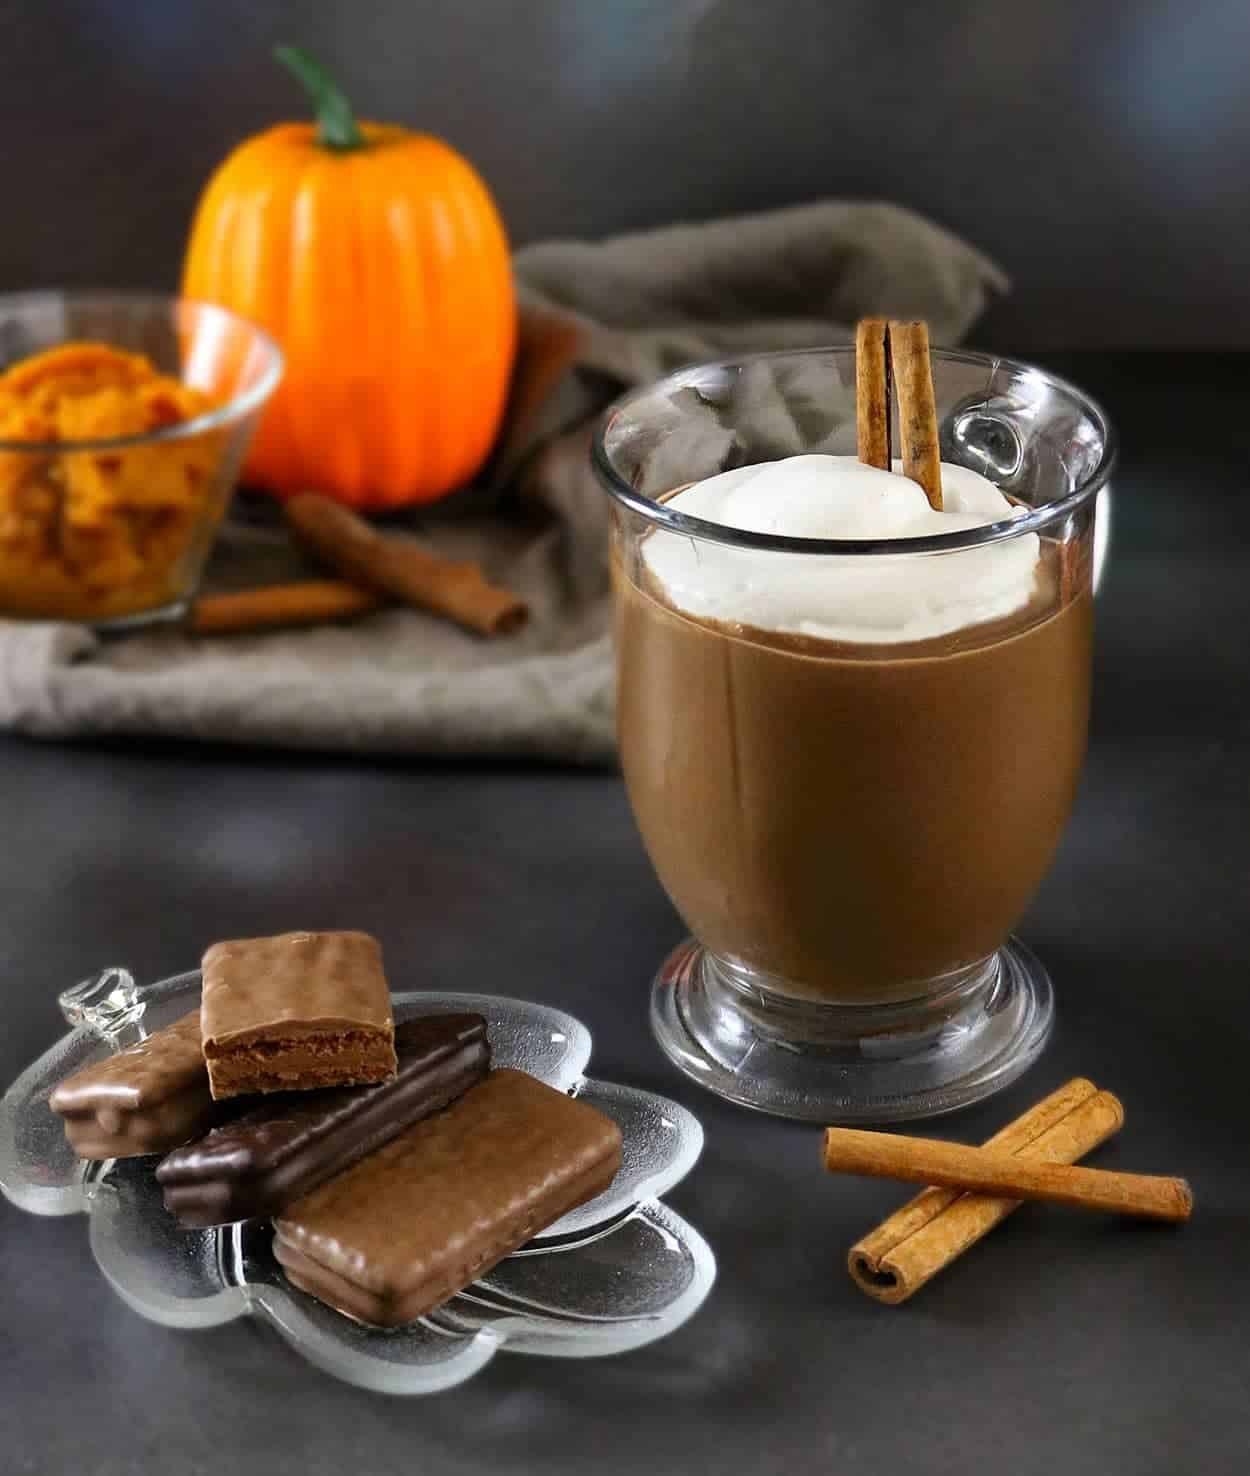 Pumpkin Spice Hot Chocolate perfect with Tim Tams #ad #TimTamFriends